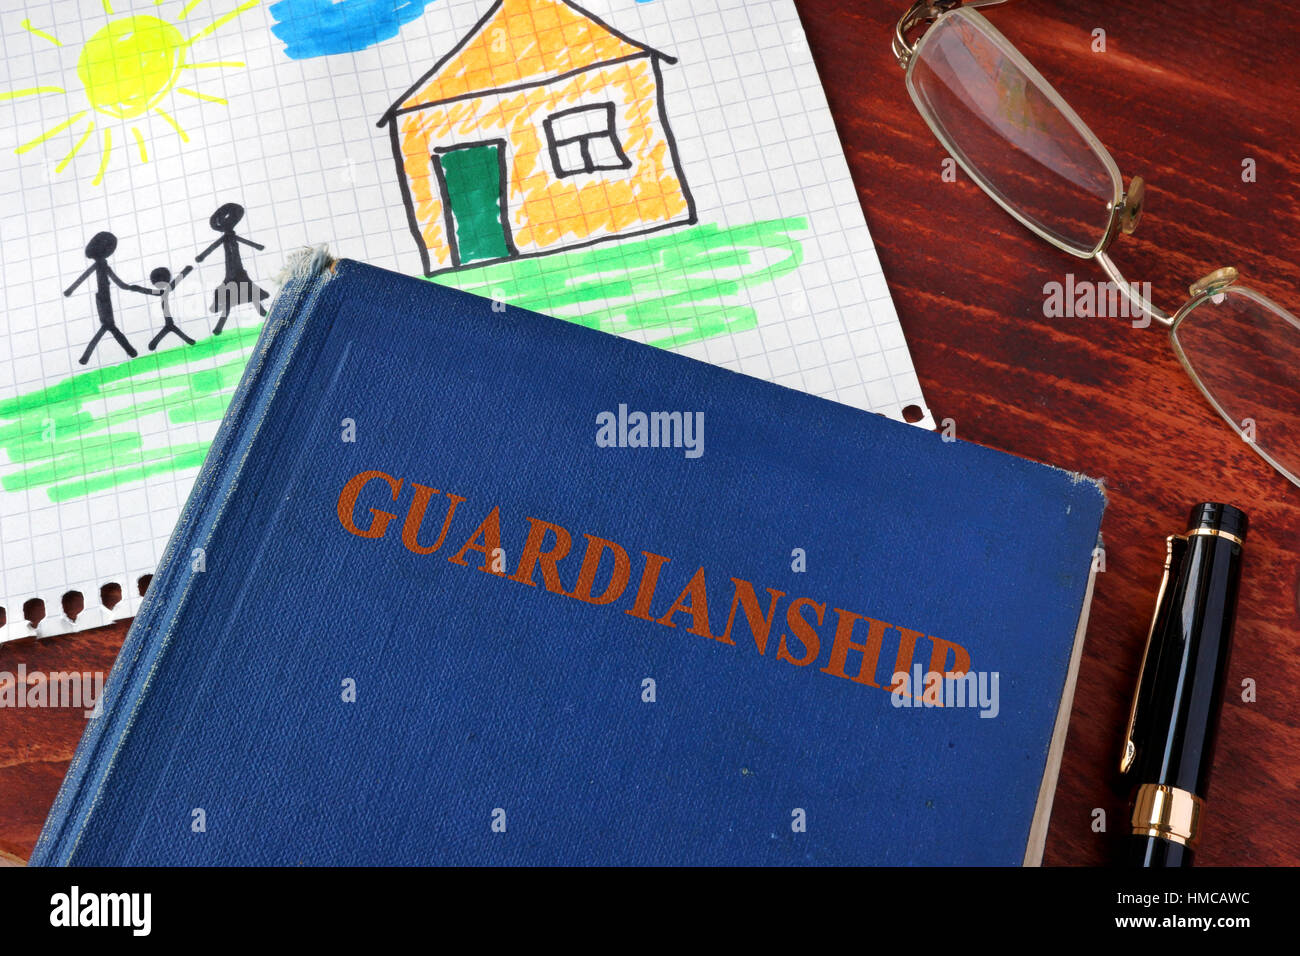 Book with title Guardianships and children's picture. - Stock Image